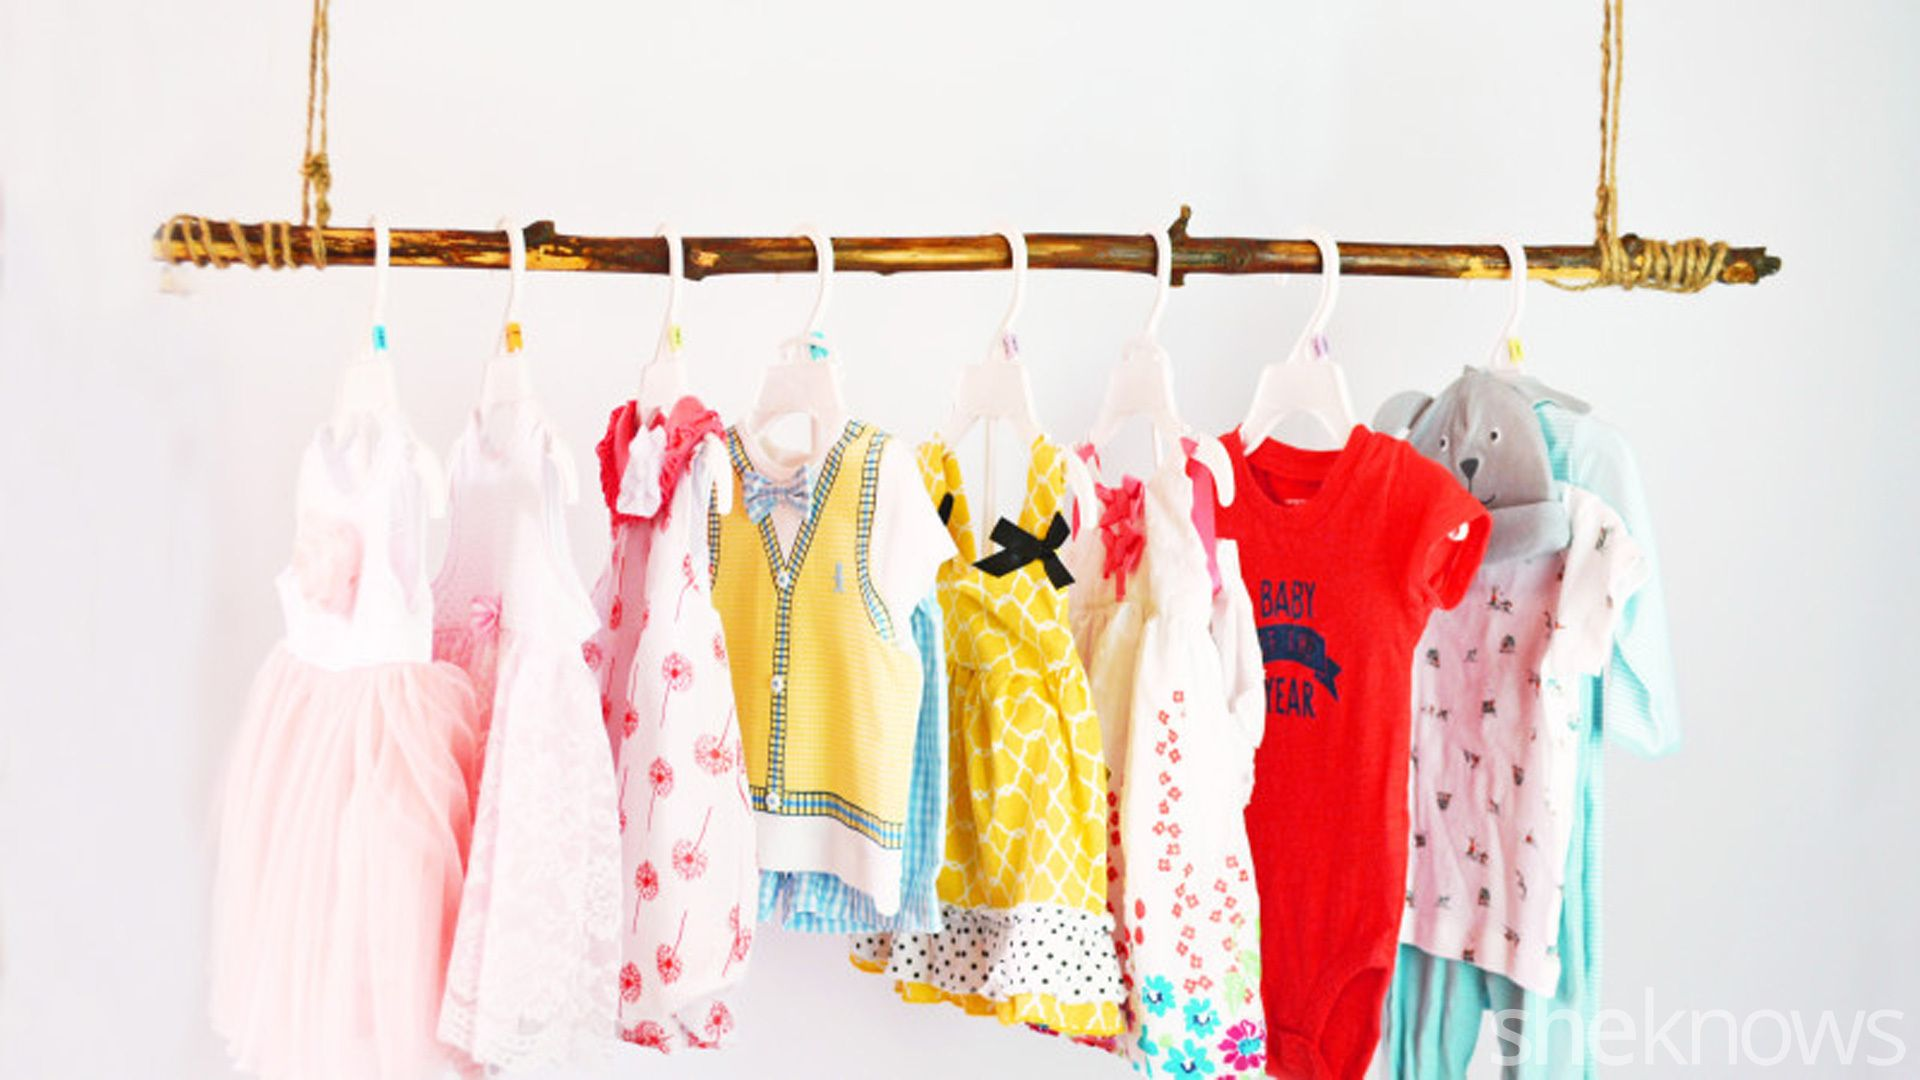 A Hanging Clothing Rod Makes It Easy To Display (And